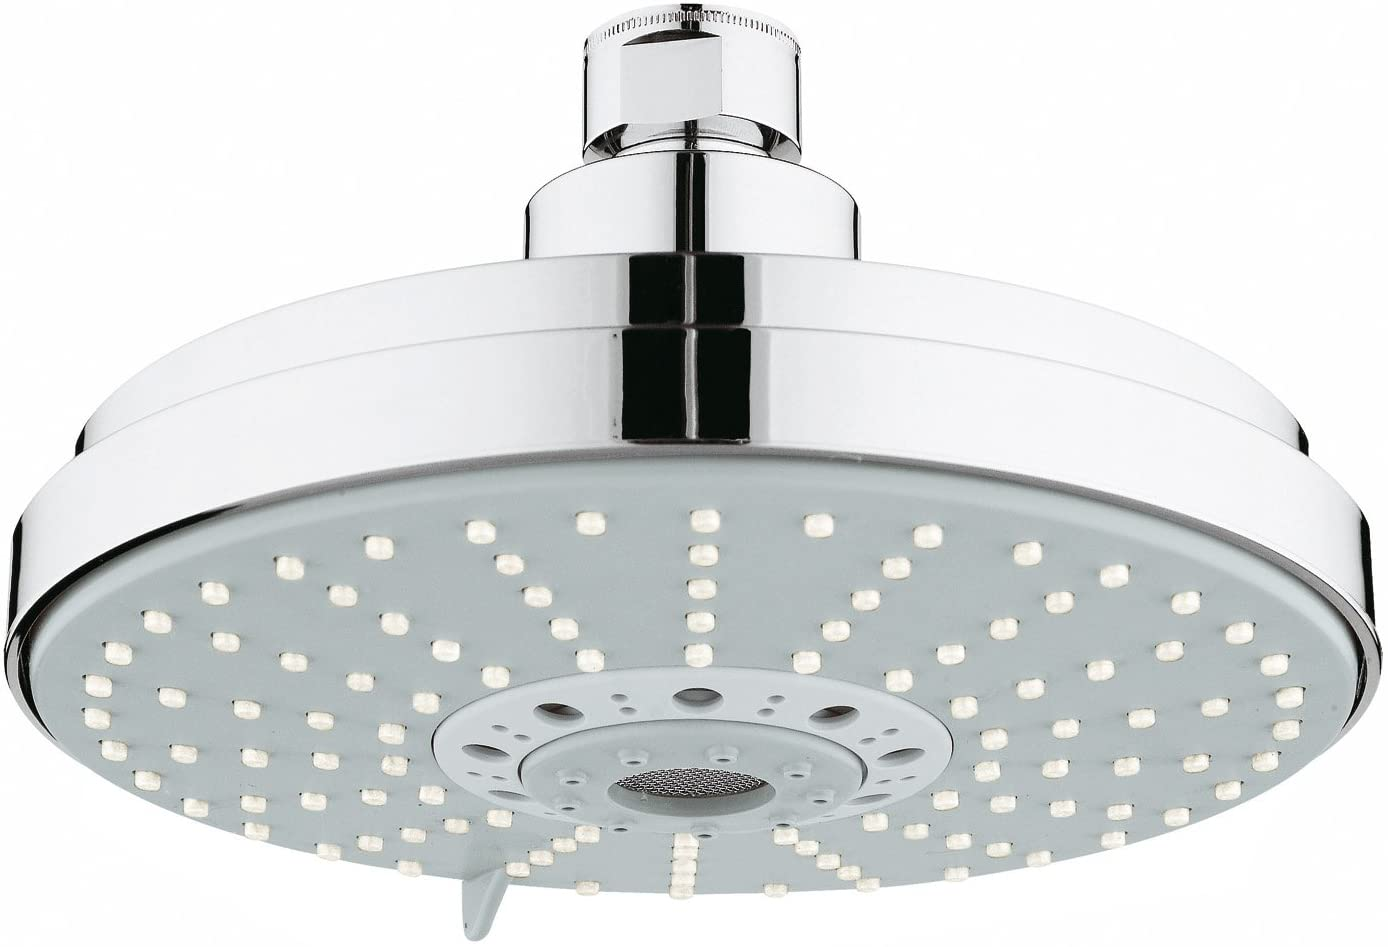 GROHE 27134000 | Rainshower Cosmopolitan 160 Head Shower | 4 Sprays